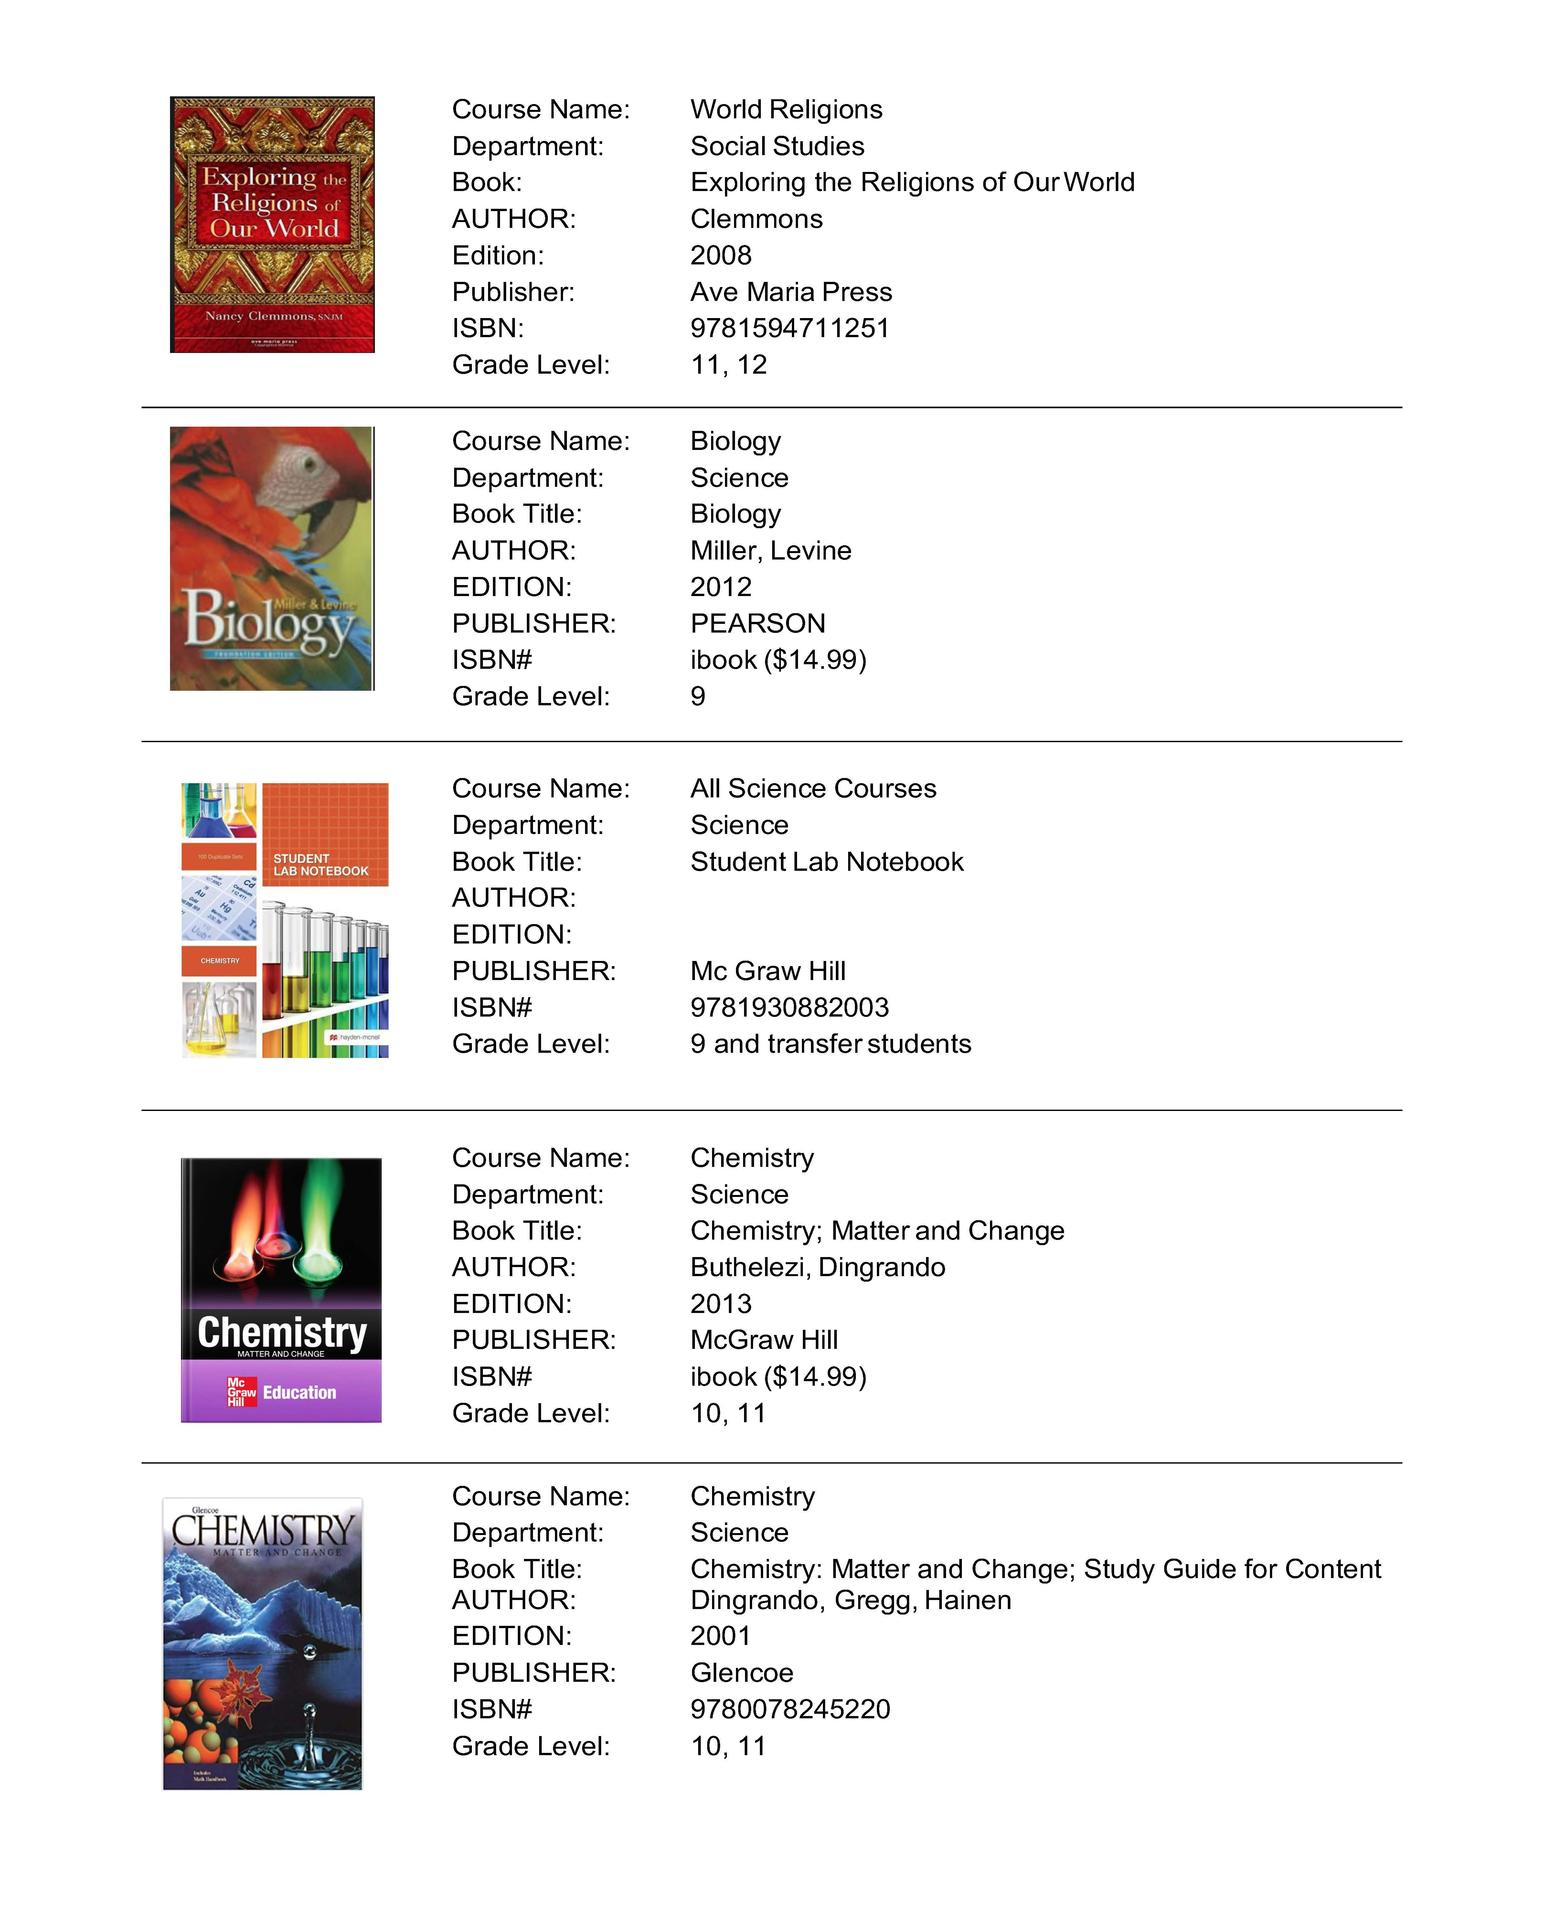 First page of book list